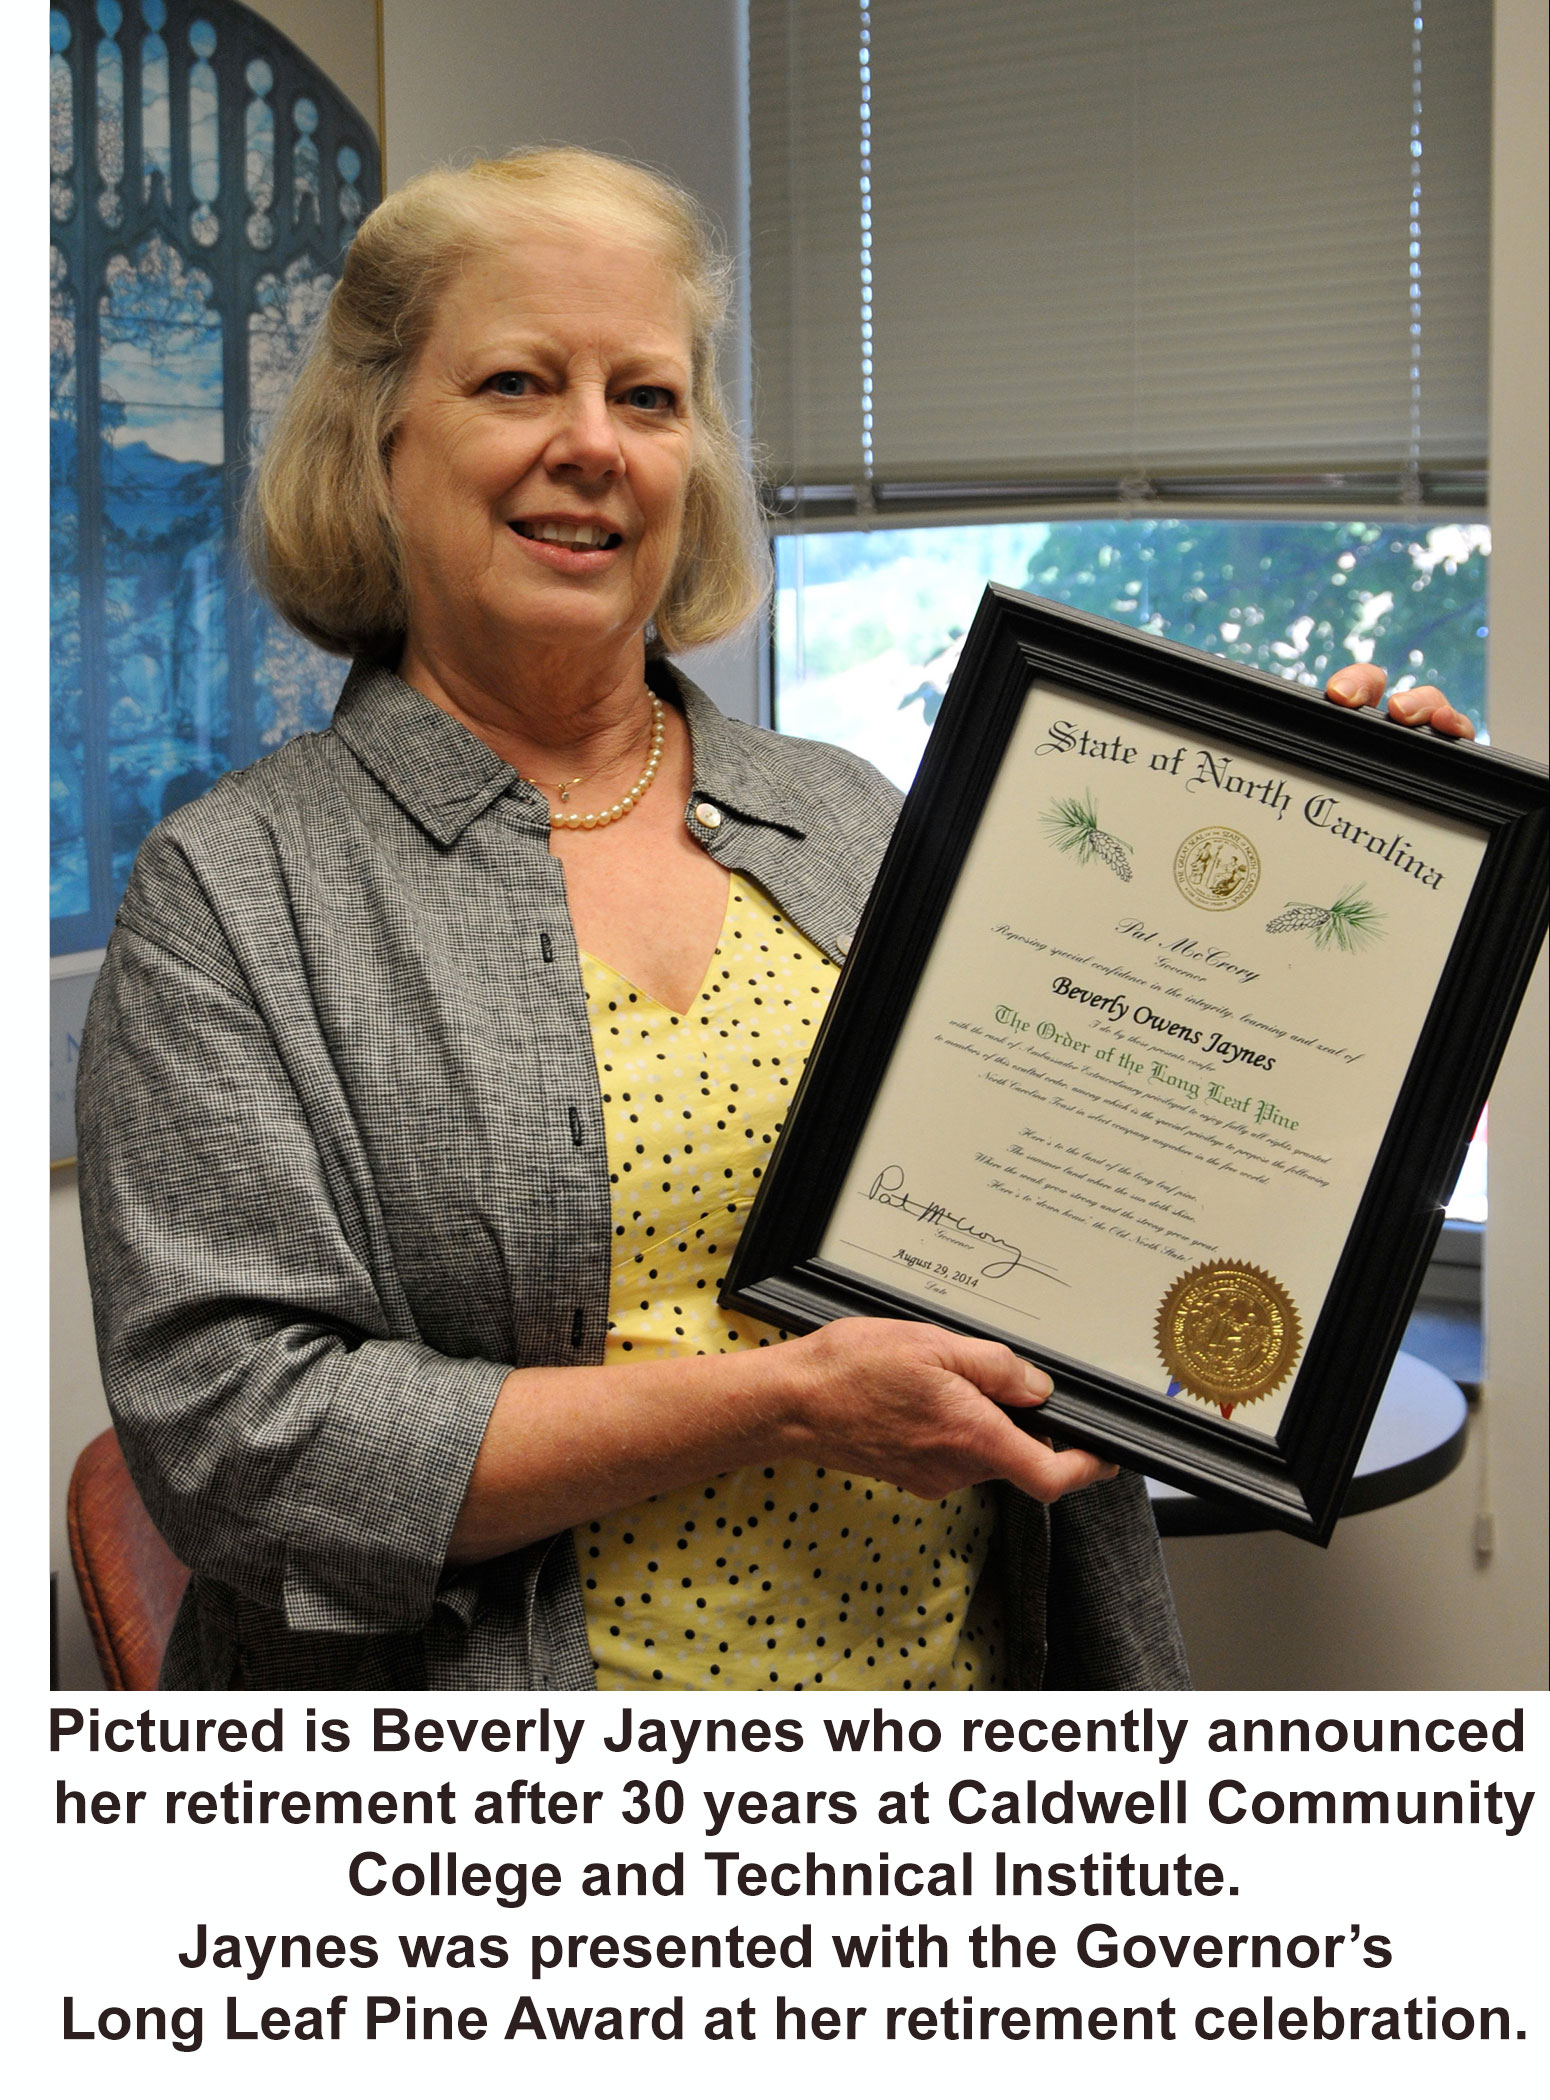 Beverly Jaynes with Long Leaf Pine Award